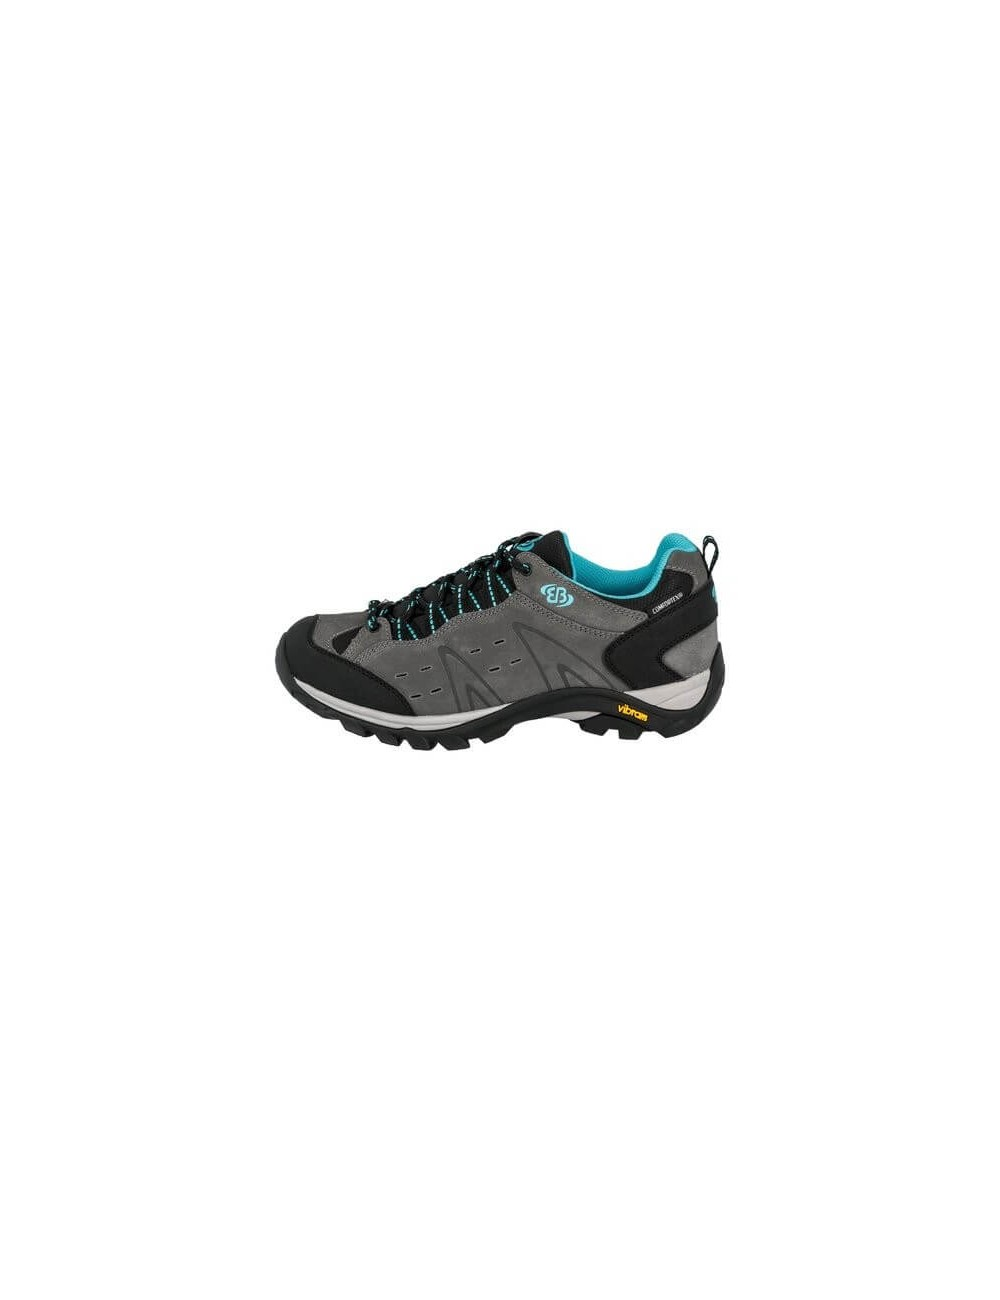 classic fit 3825b efa35 Brütting, hiking shoes, ladies, Mount Bona Low - Grey - and- Turquoise -